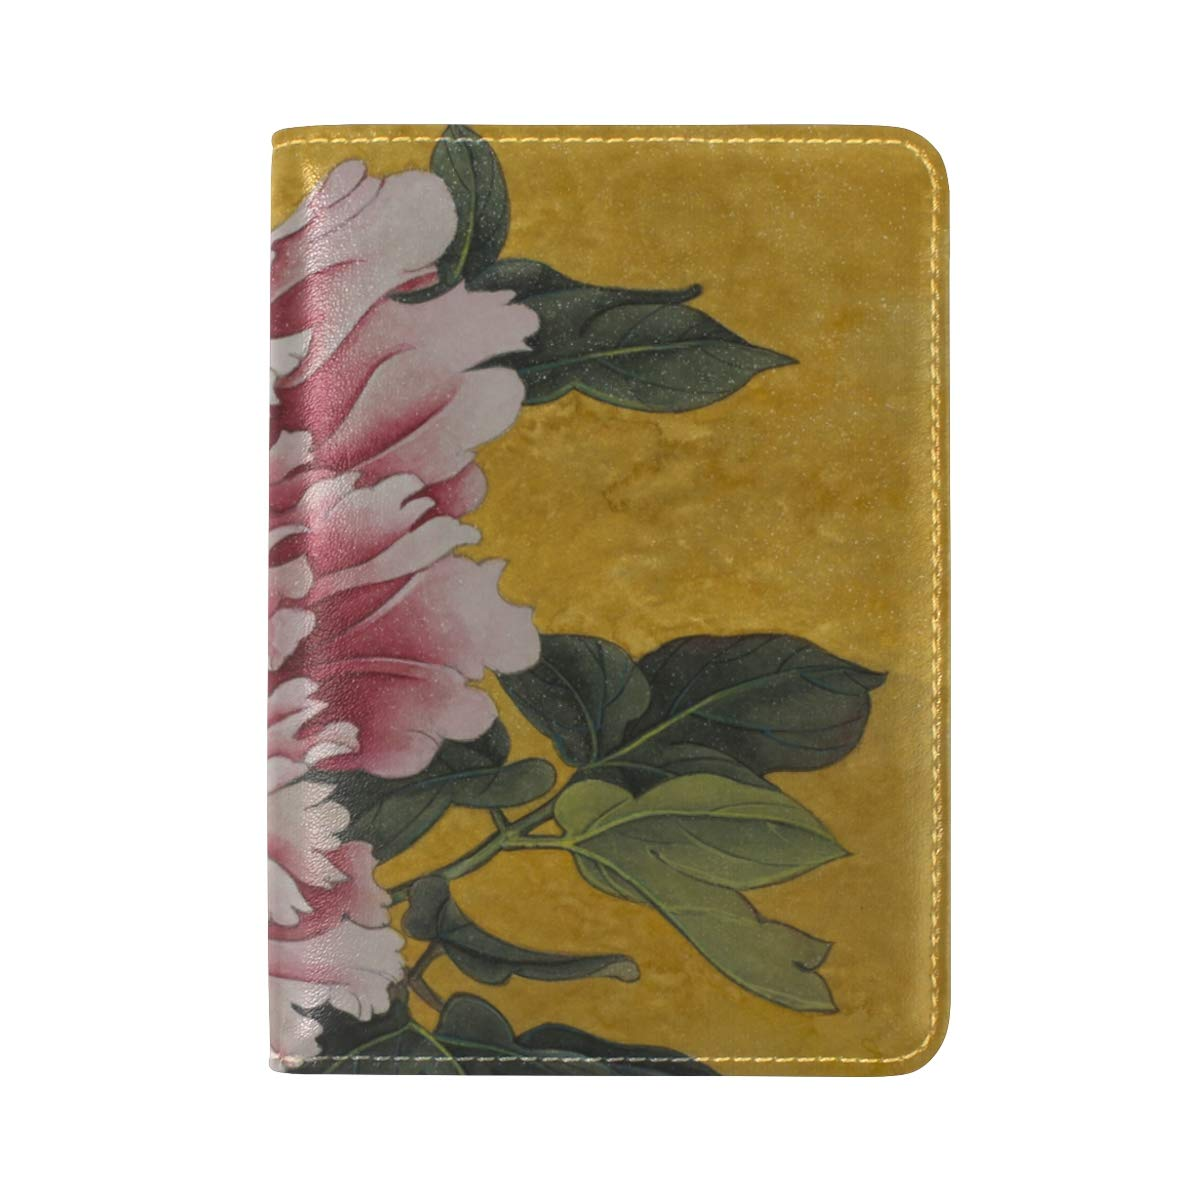 Delicate Flower Peony Yellow Background One Pocket Leather Passport Holder Cover Case Protector for Men Women Travel